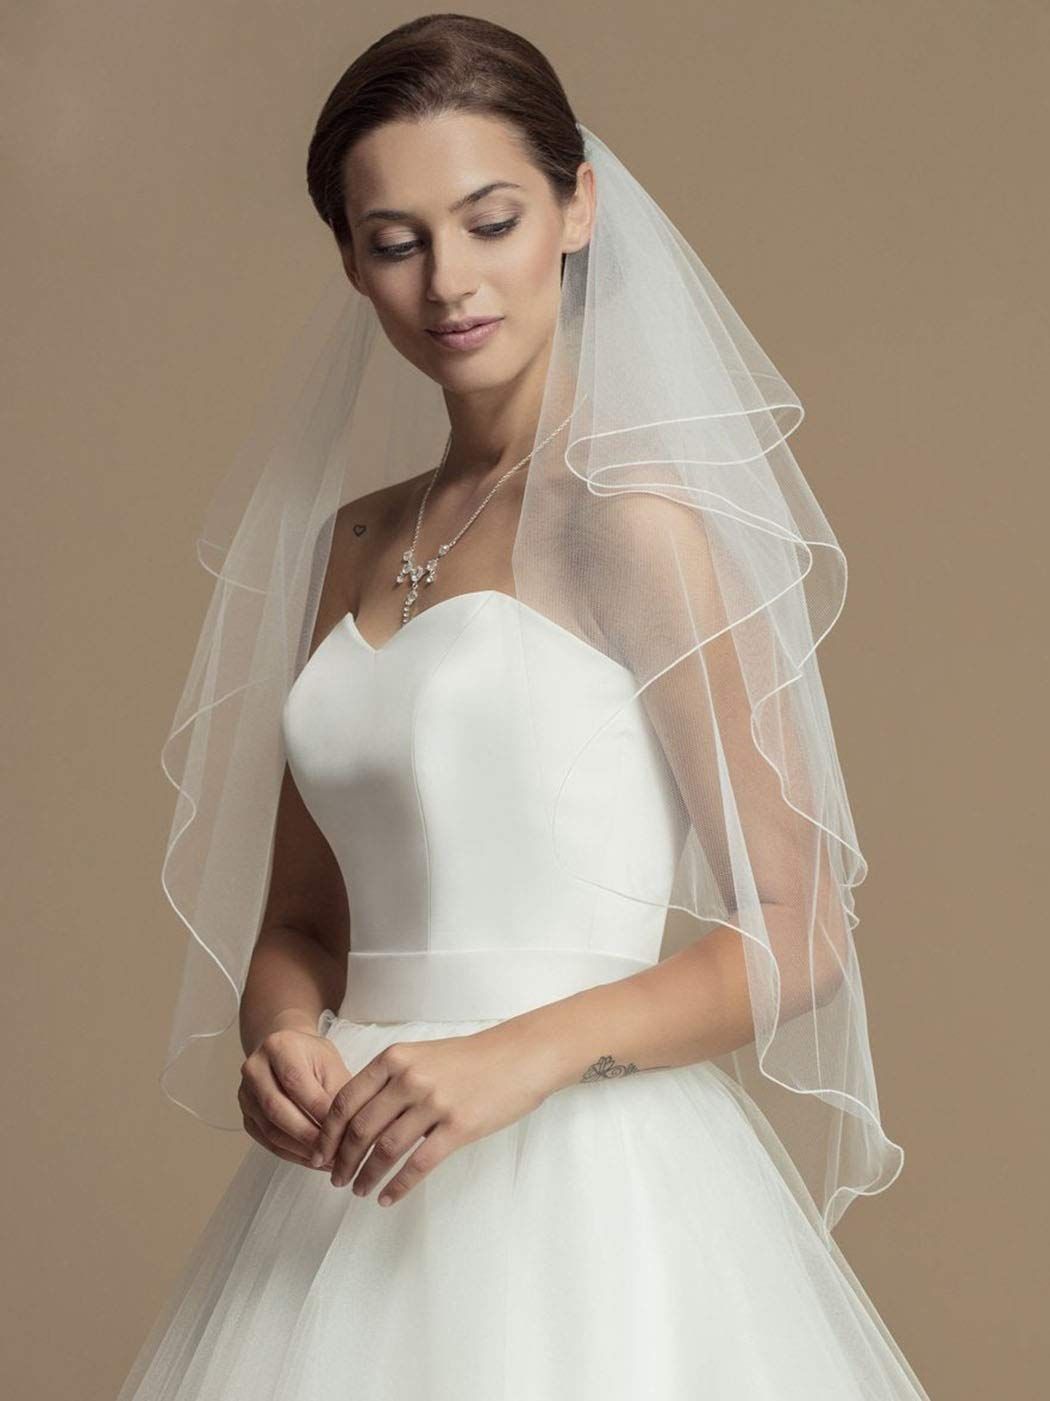 Heread 2-Tier Wedding Veil Waist Length Short Bride Hair Accessoies Bridal Tulle with Comb and Pencil Edge (White)